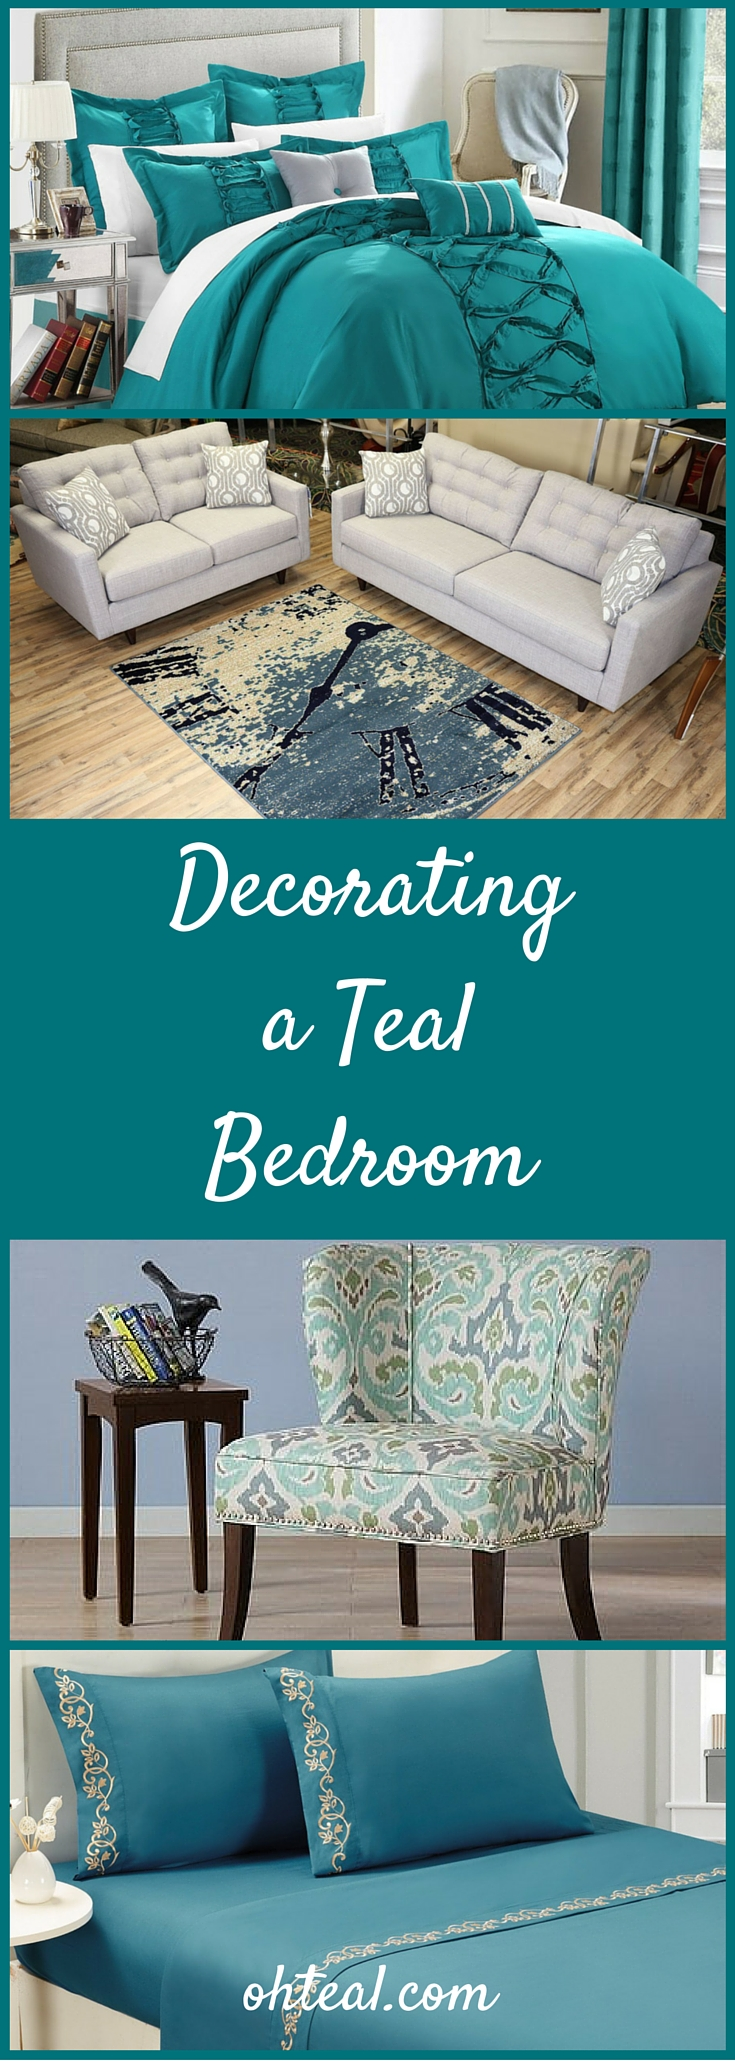 Decorating a Teal Bedroom